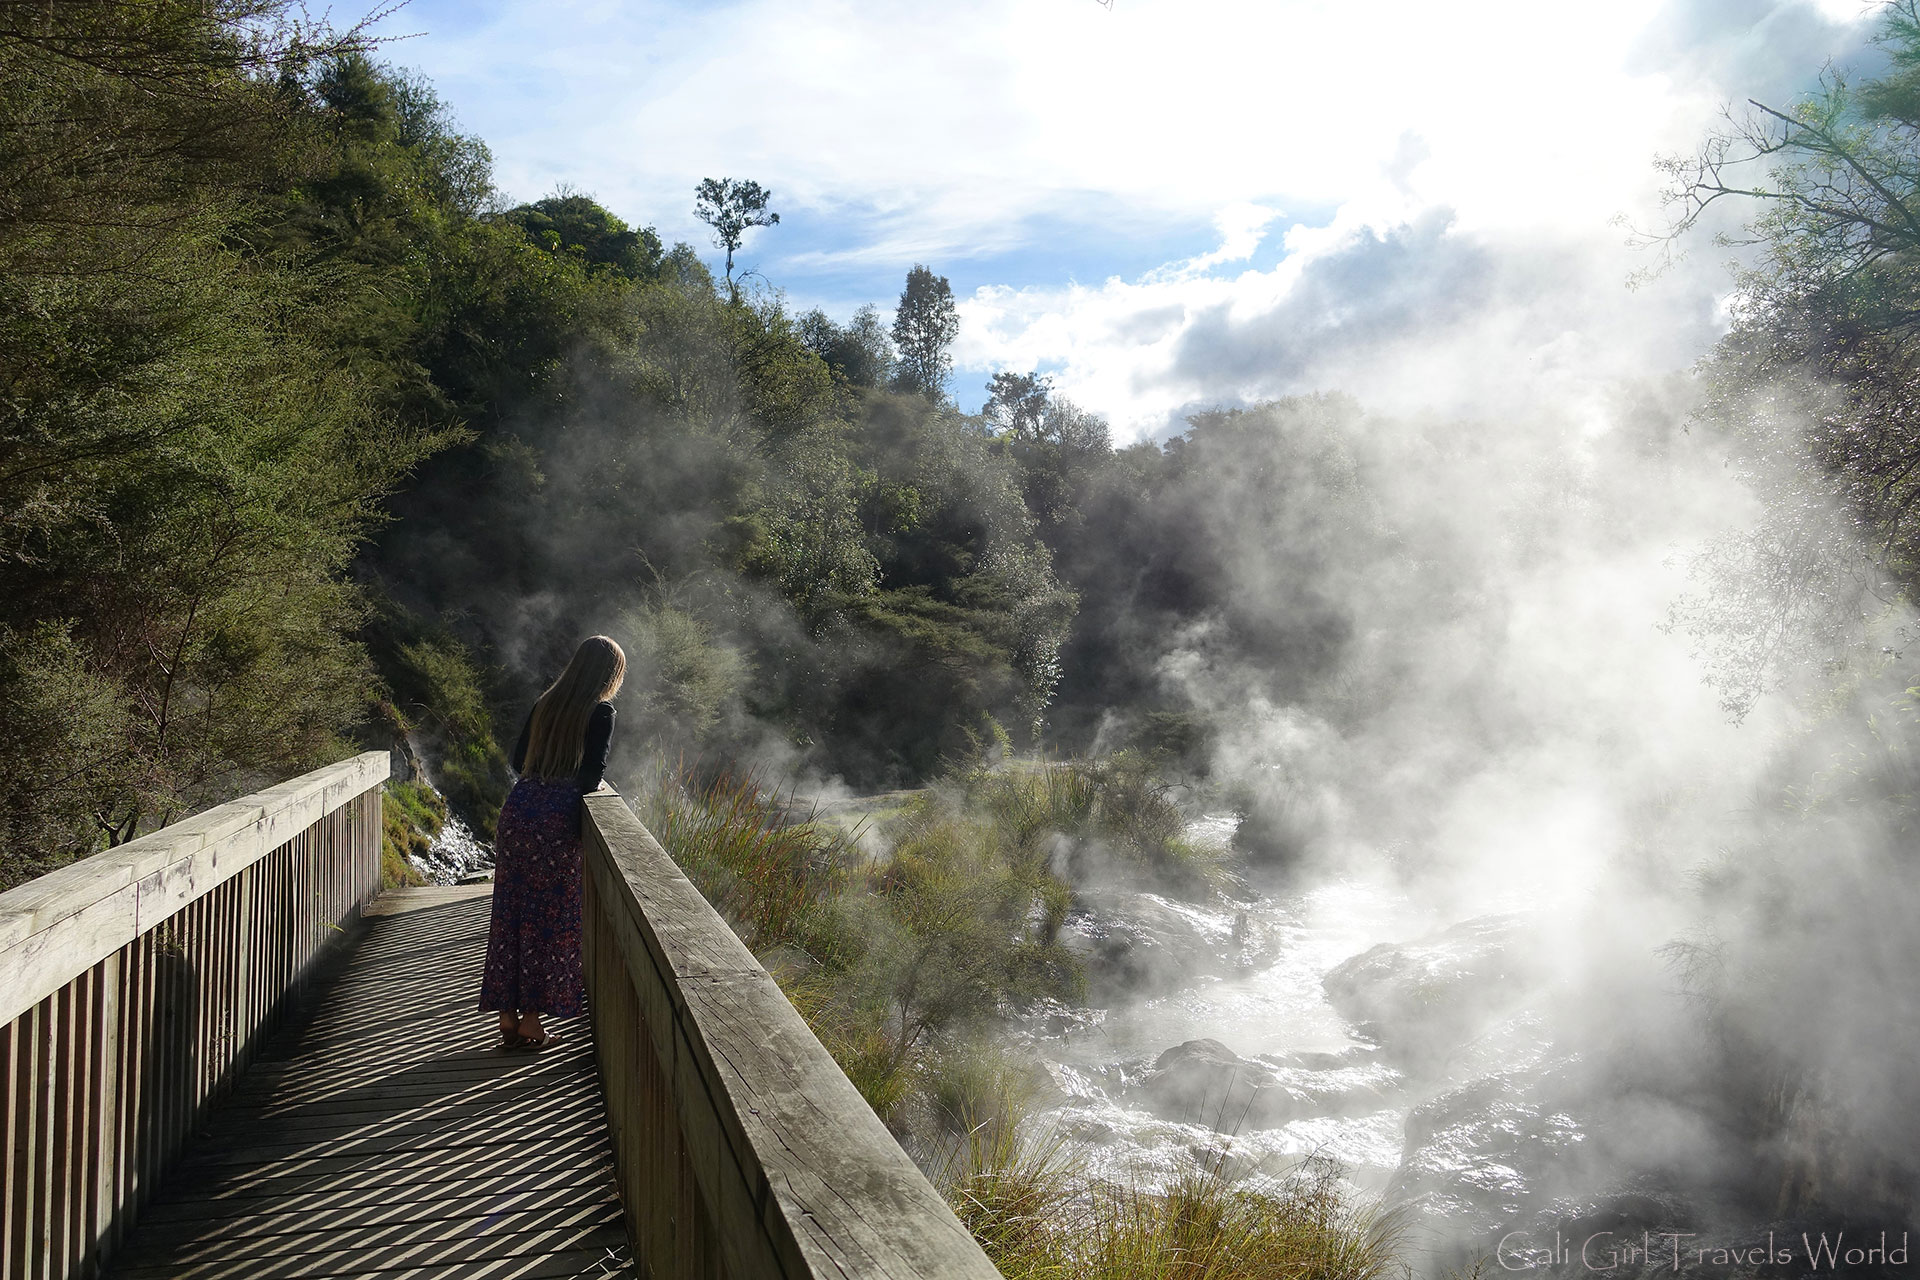 Exploring the wonders of Waimangu Geothermal site near Rotorua in New Zealand's North Island.